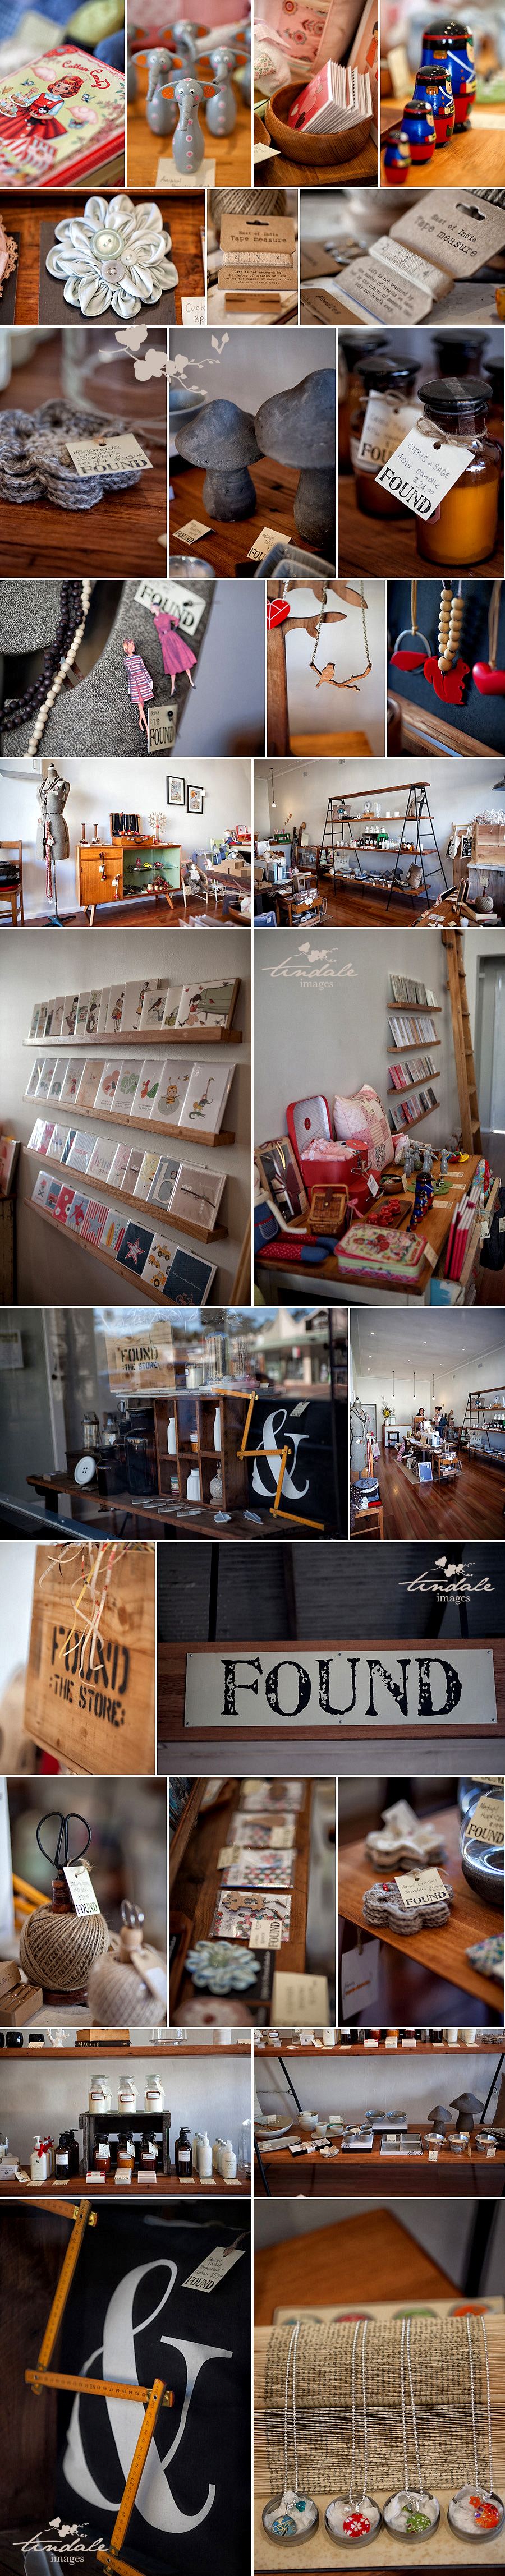 Found - the store..   sutherland shire commercial photographer